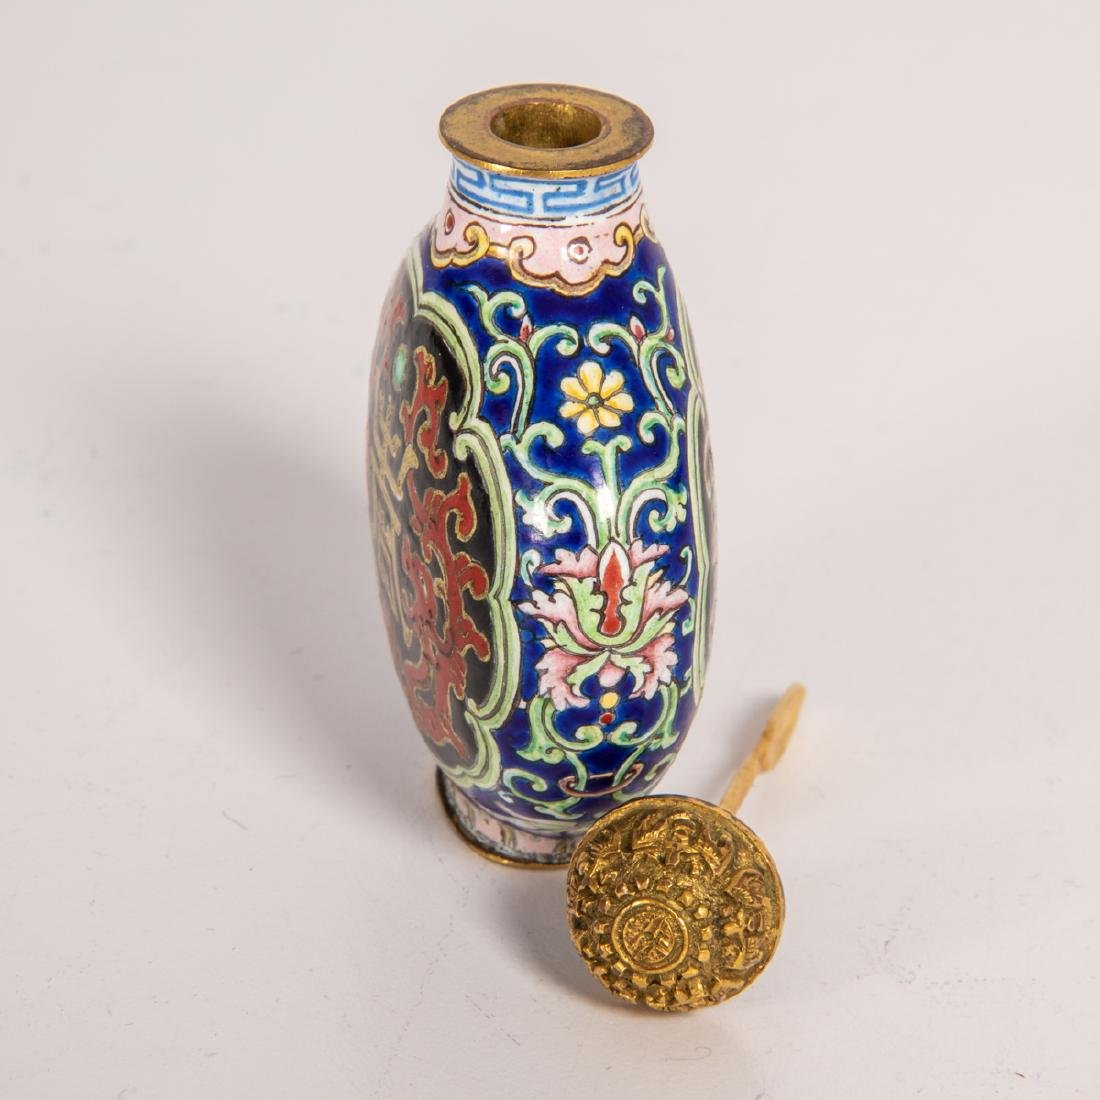 A Chinese Porcelain Enamel Snuff Bottle with Qianlong - 3